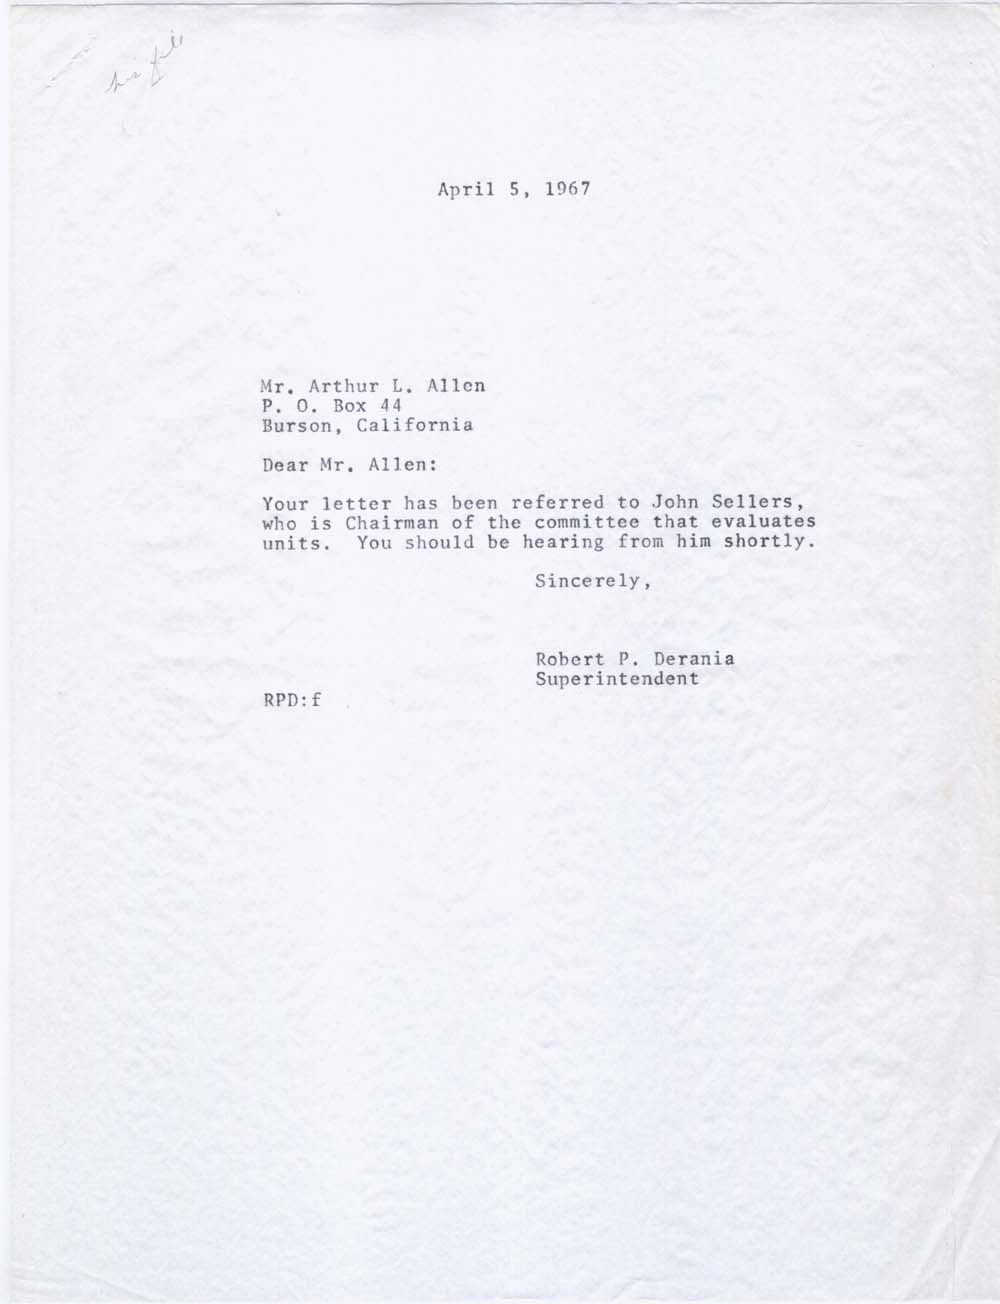 How to write absent letter to school teacher images letter writing write absent letter to teacher unmiser able arthur leigh allens 1966 1968 personnel file spiritdancerdesigns Image collections